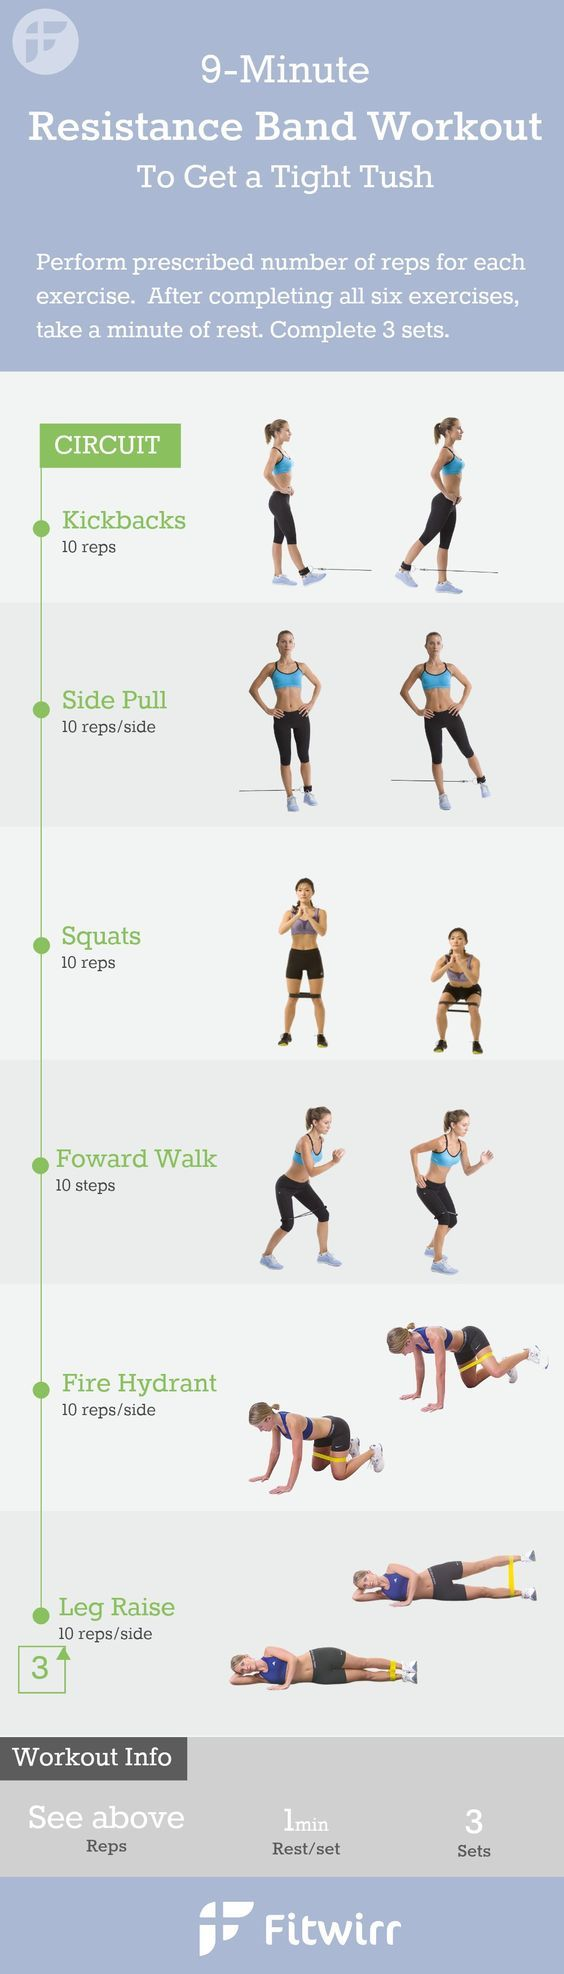 9-Minute Resistance Band Exercises for women. You don't have to lift heavy dumbbells or a medicine ball to get a great workout at home. Follow this 9 minute exercise band workouts to firm your butt, legs and inner thighs.